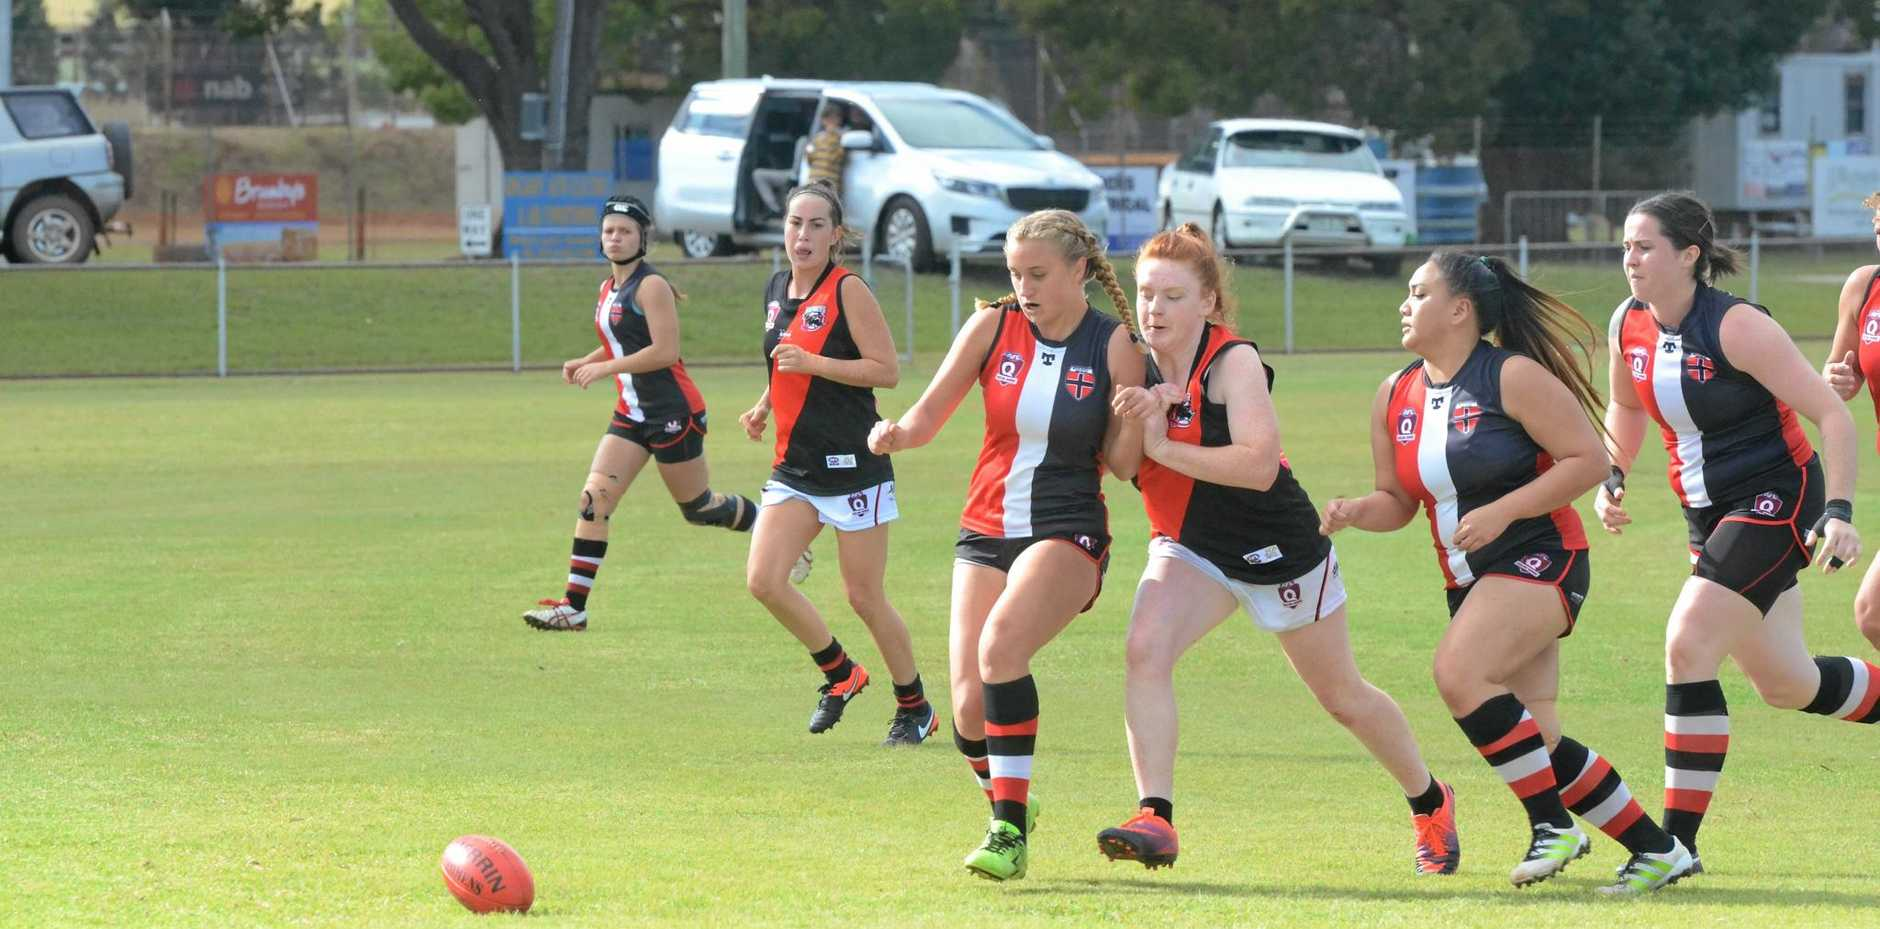 The Saints women have improved with each game they play.